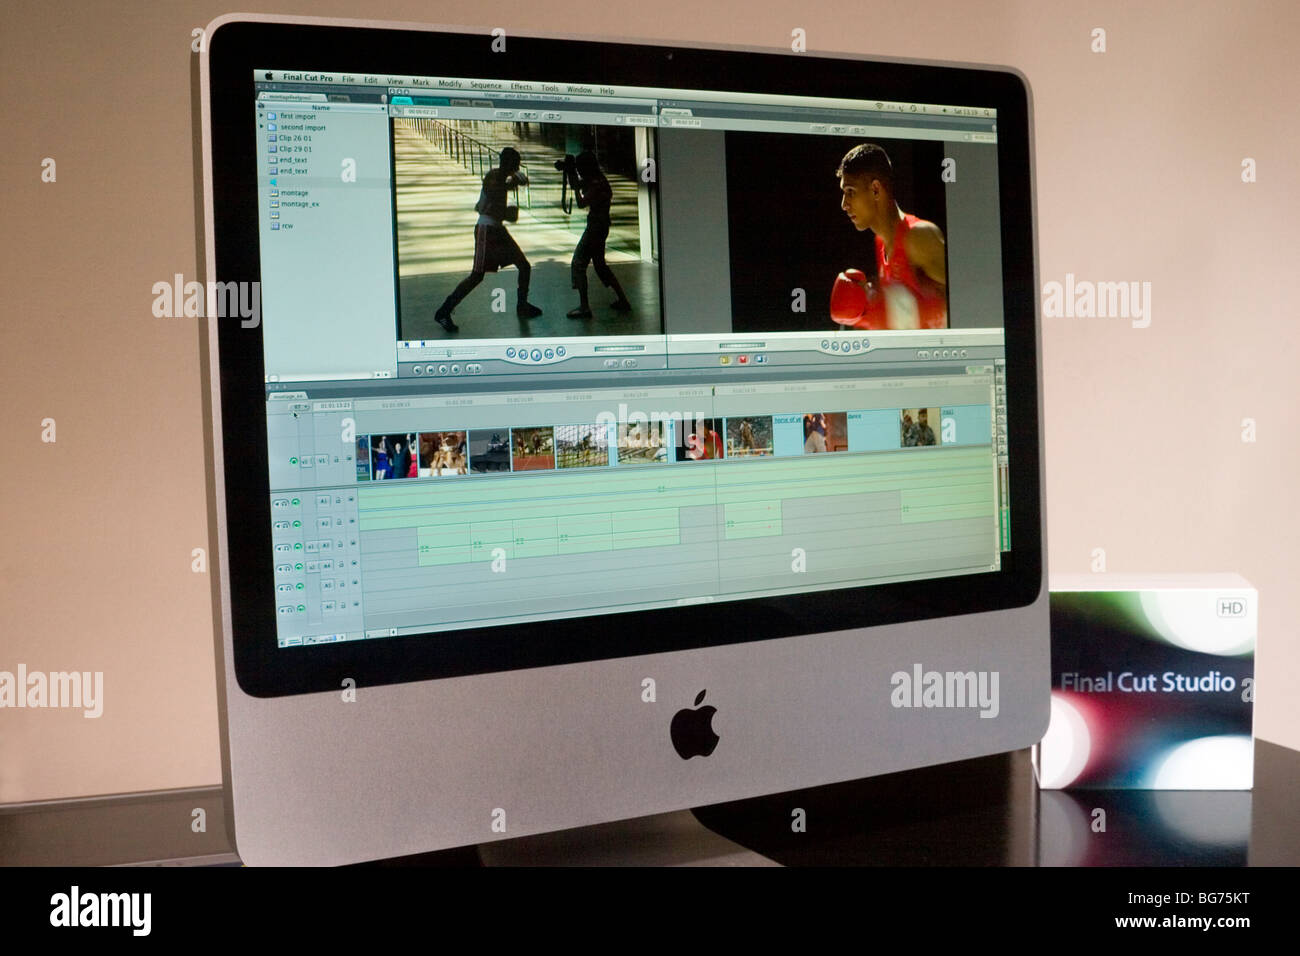 'Apple Final Cut Pro 7' video editing software displayed on imac - Stock Image